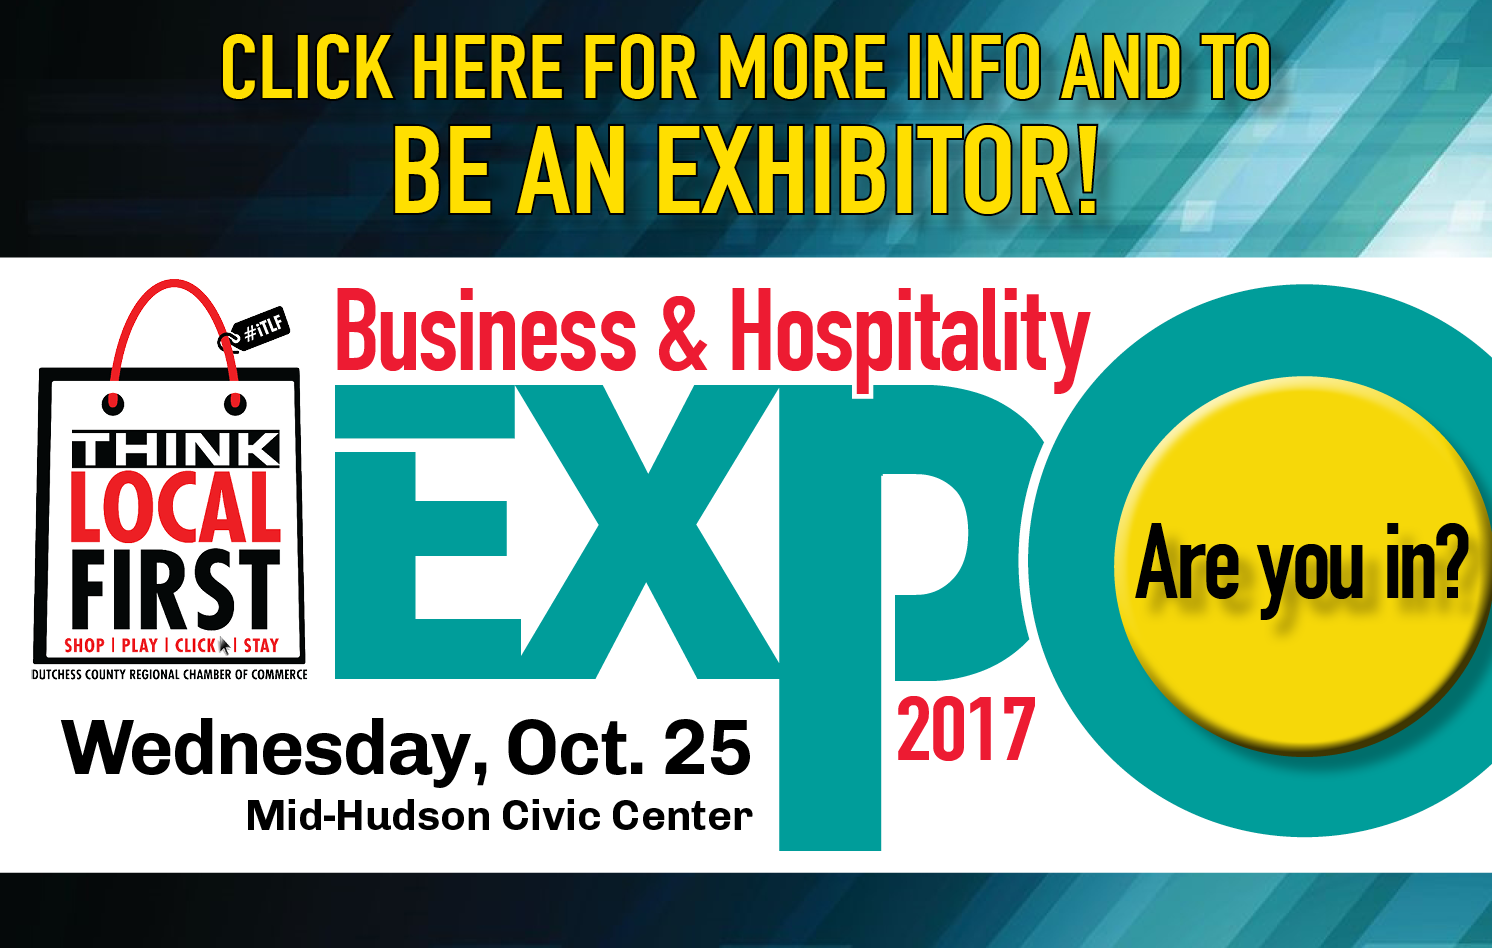 BusinessExpo2017.png